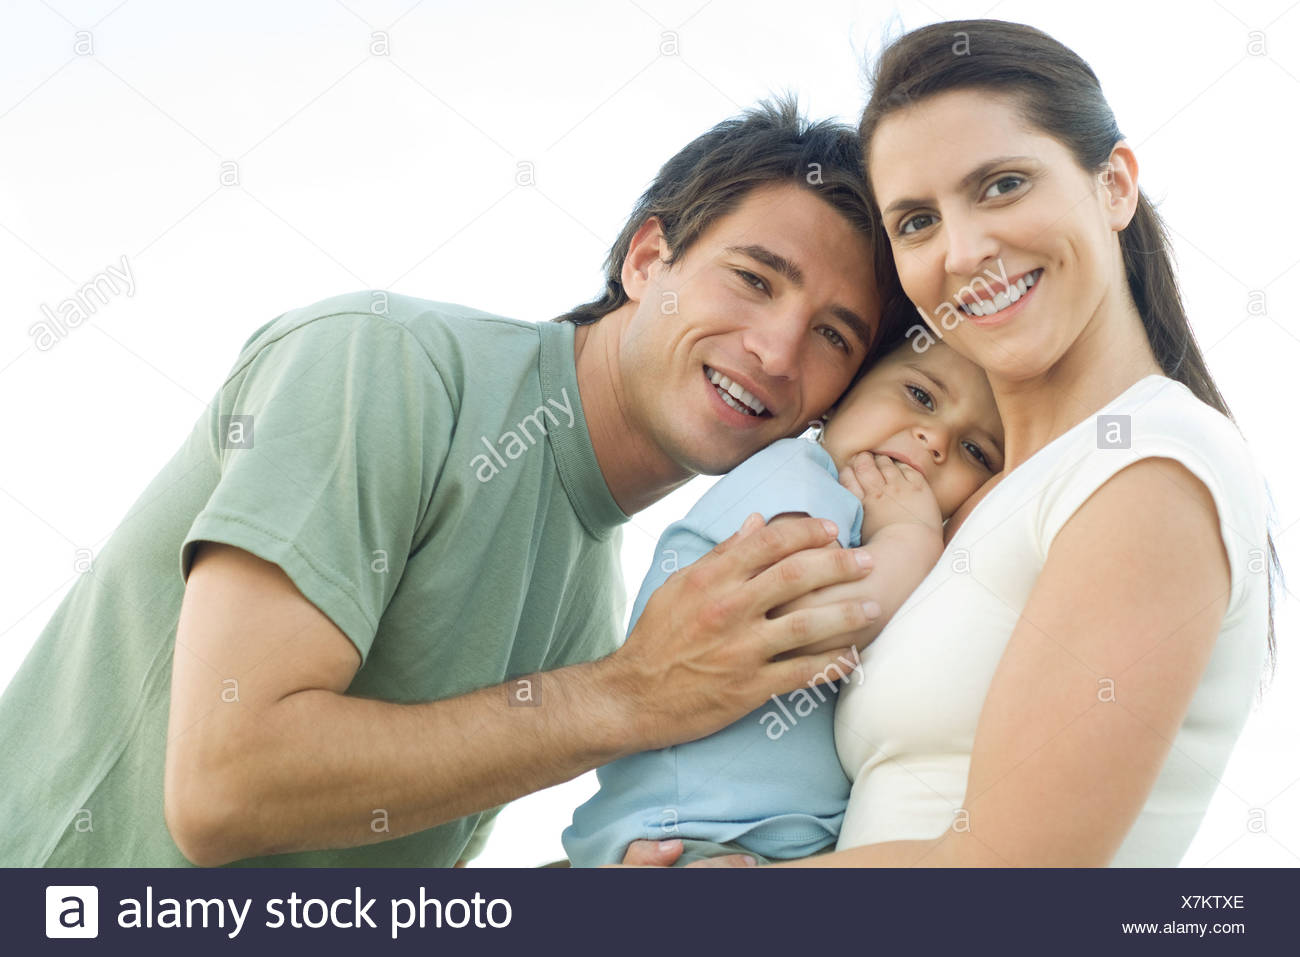 Family smiling at camera, mother holding baby daughter, father leaning in and gently hugging the baby - Stock Image